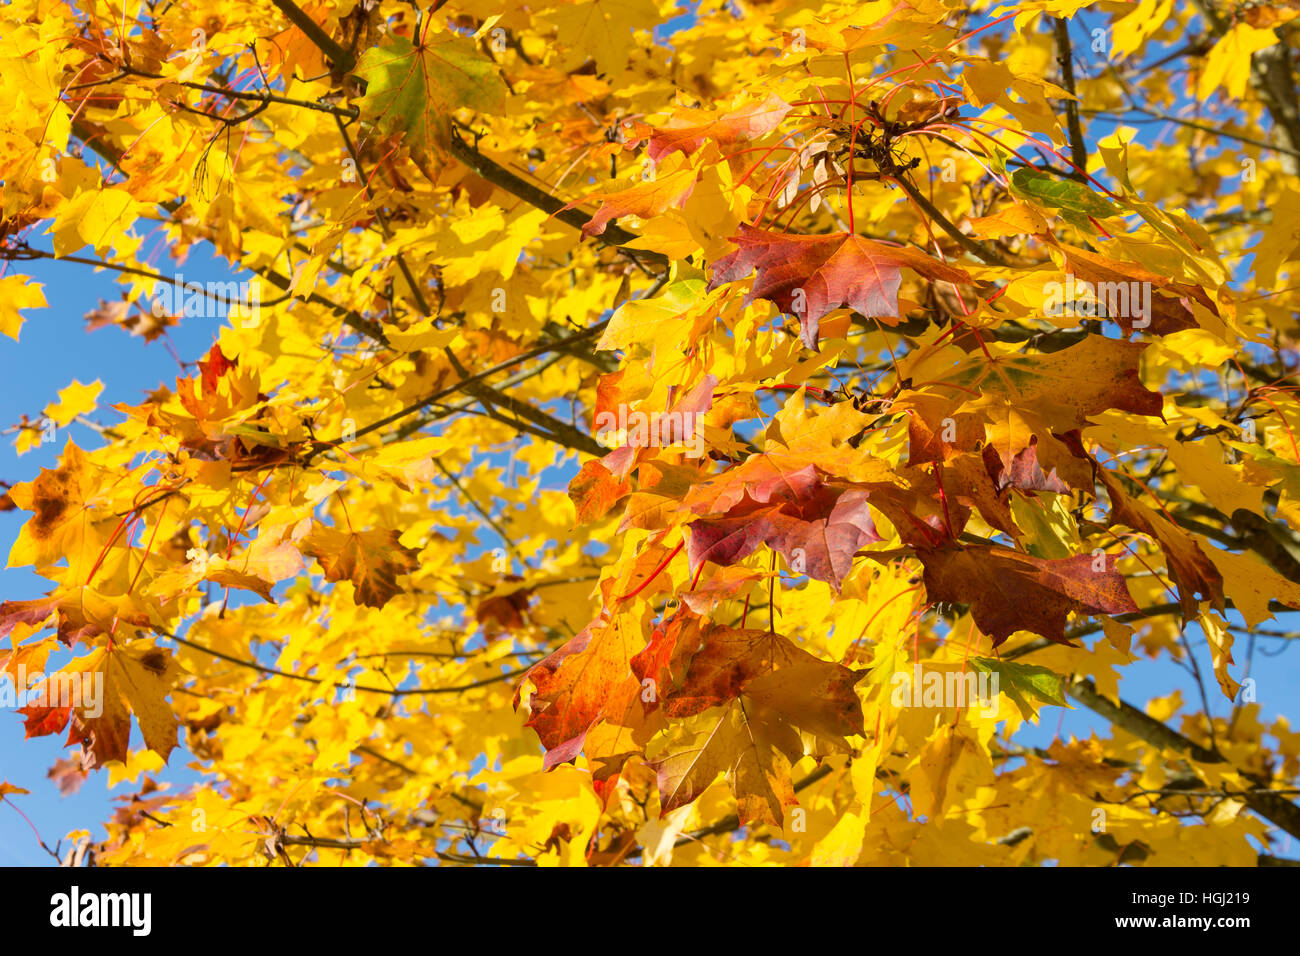 Autumn colours at Foxhills Club & Resort, Stonehill Road, Ottershaw, Surrey, England, United Kingdom - Stock Image